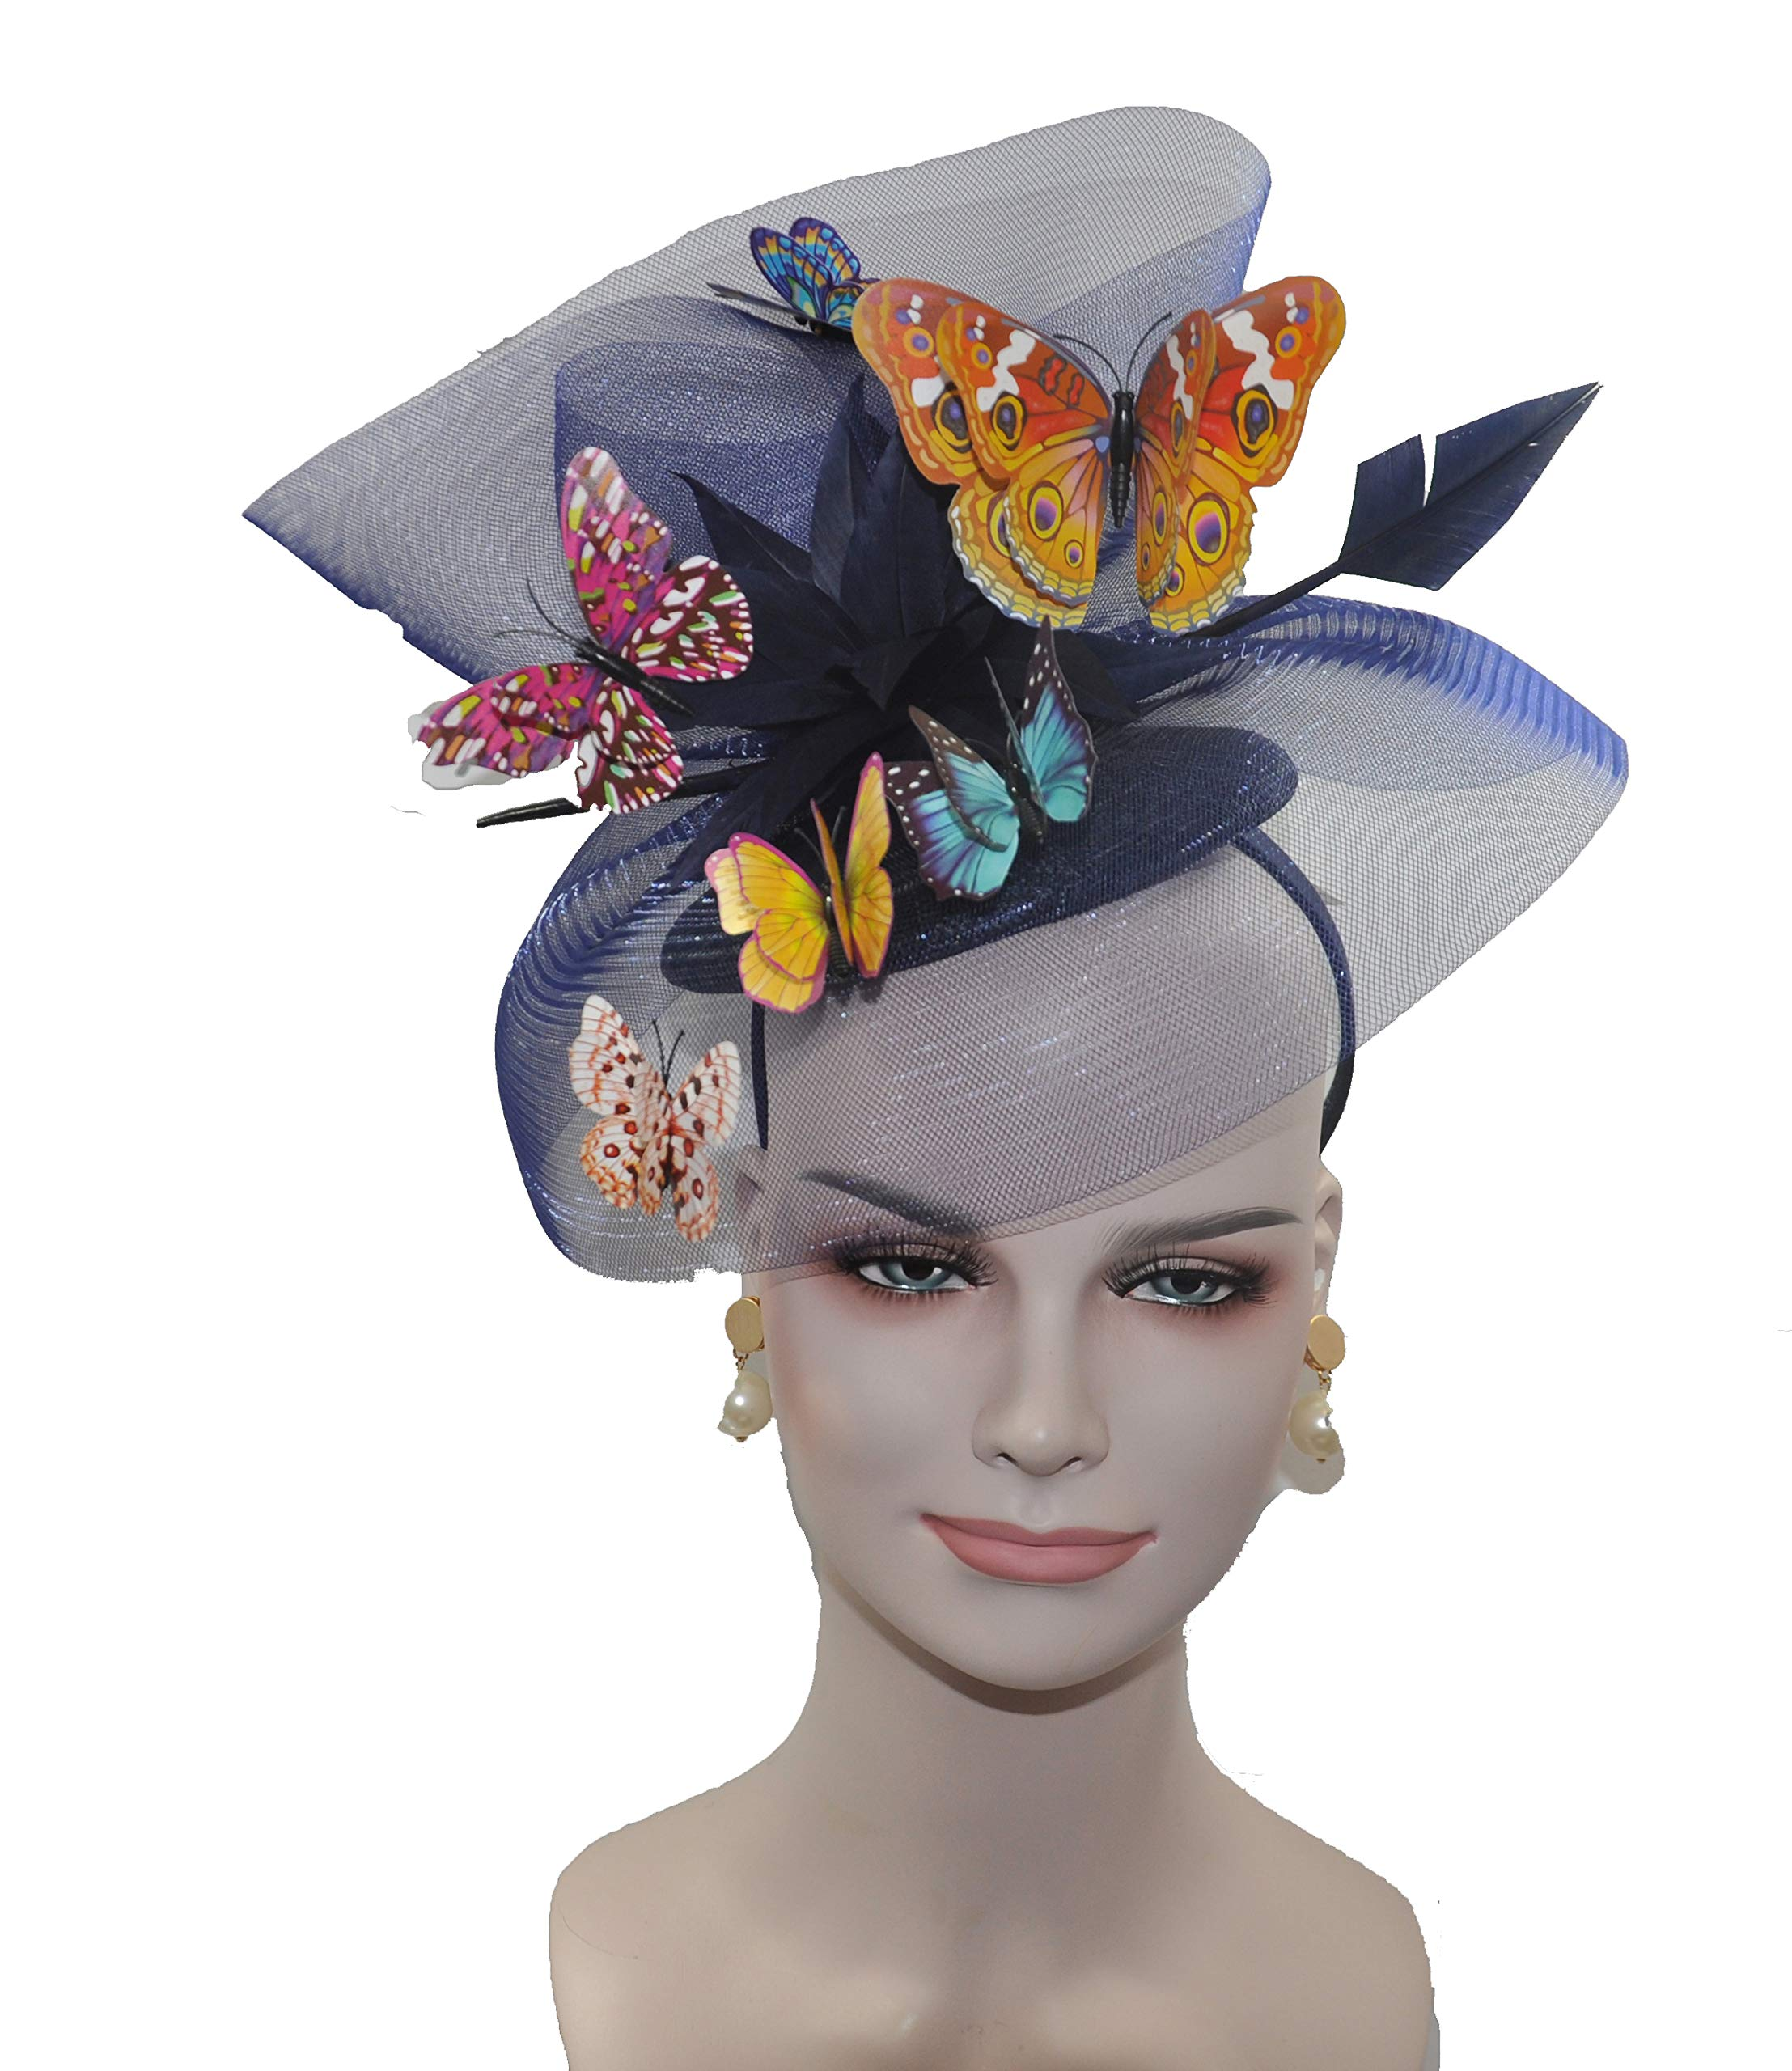 Kentucky Derby Wedding Feather w Butterflies Floral Organza w Sinamay Headband Fascinator Hat Cocktail Navy Blue